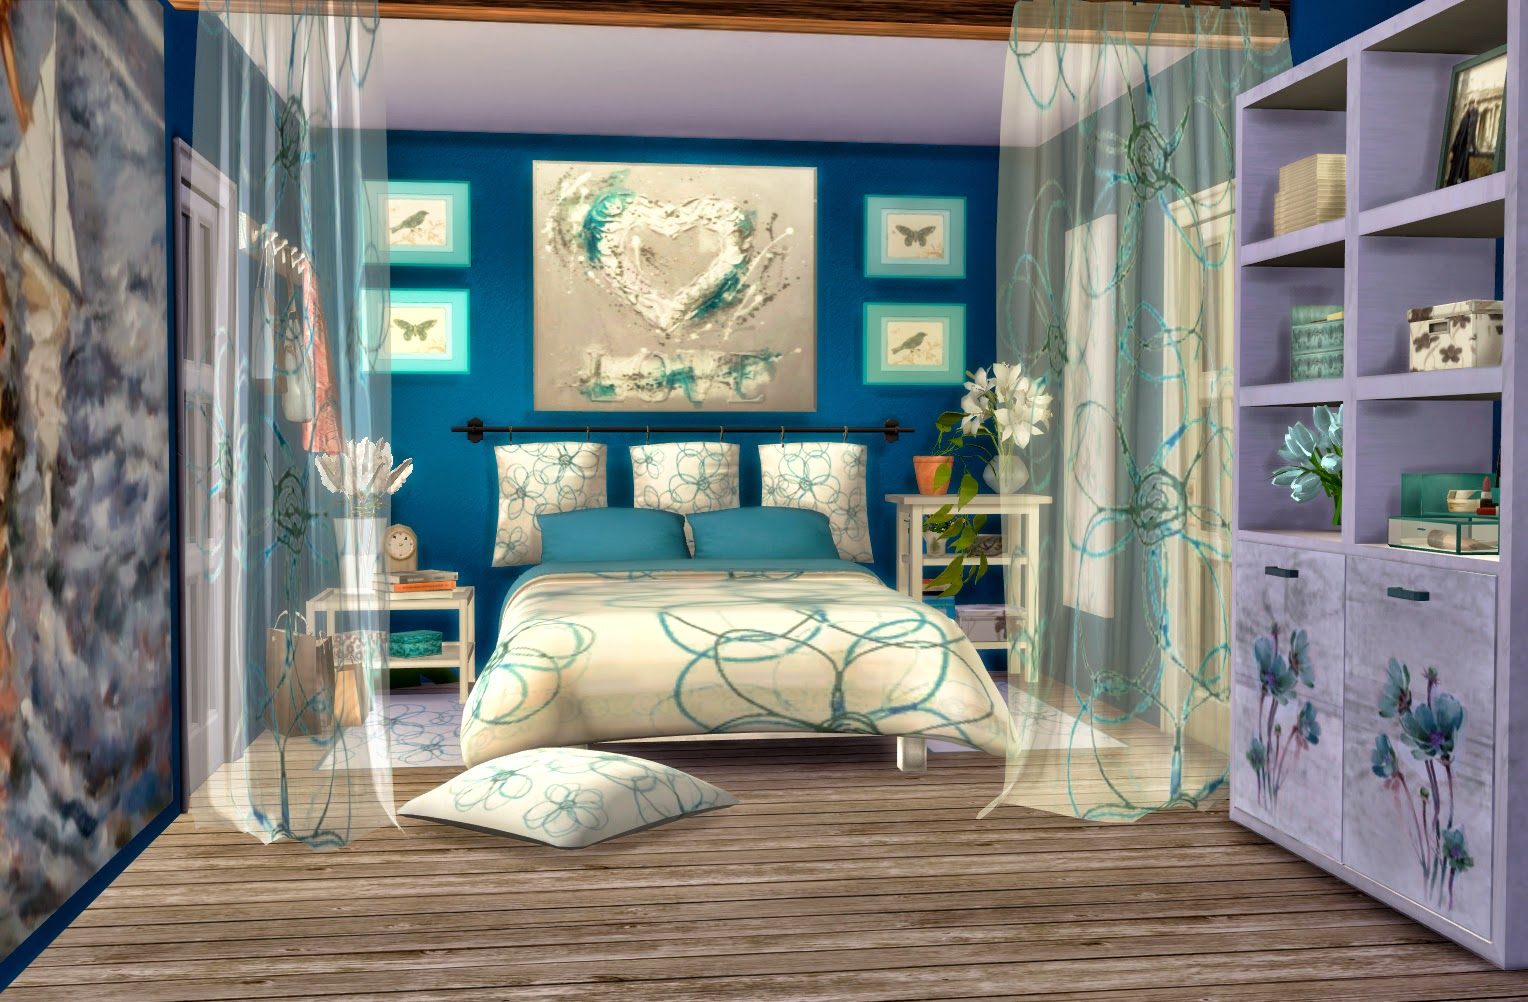 Formentera bedroom sims 4 custom content for Cuartos para ninos sims 4